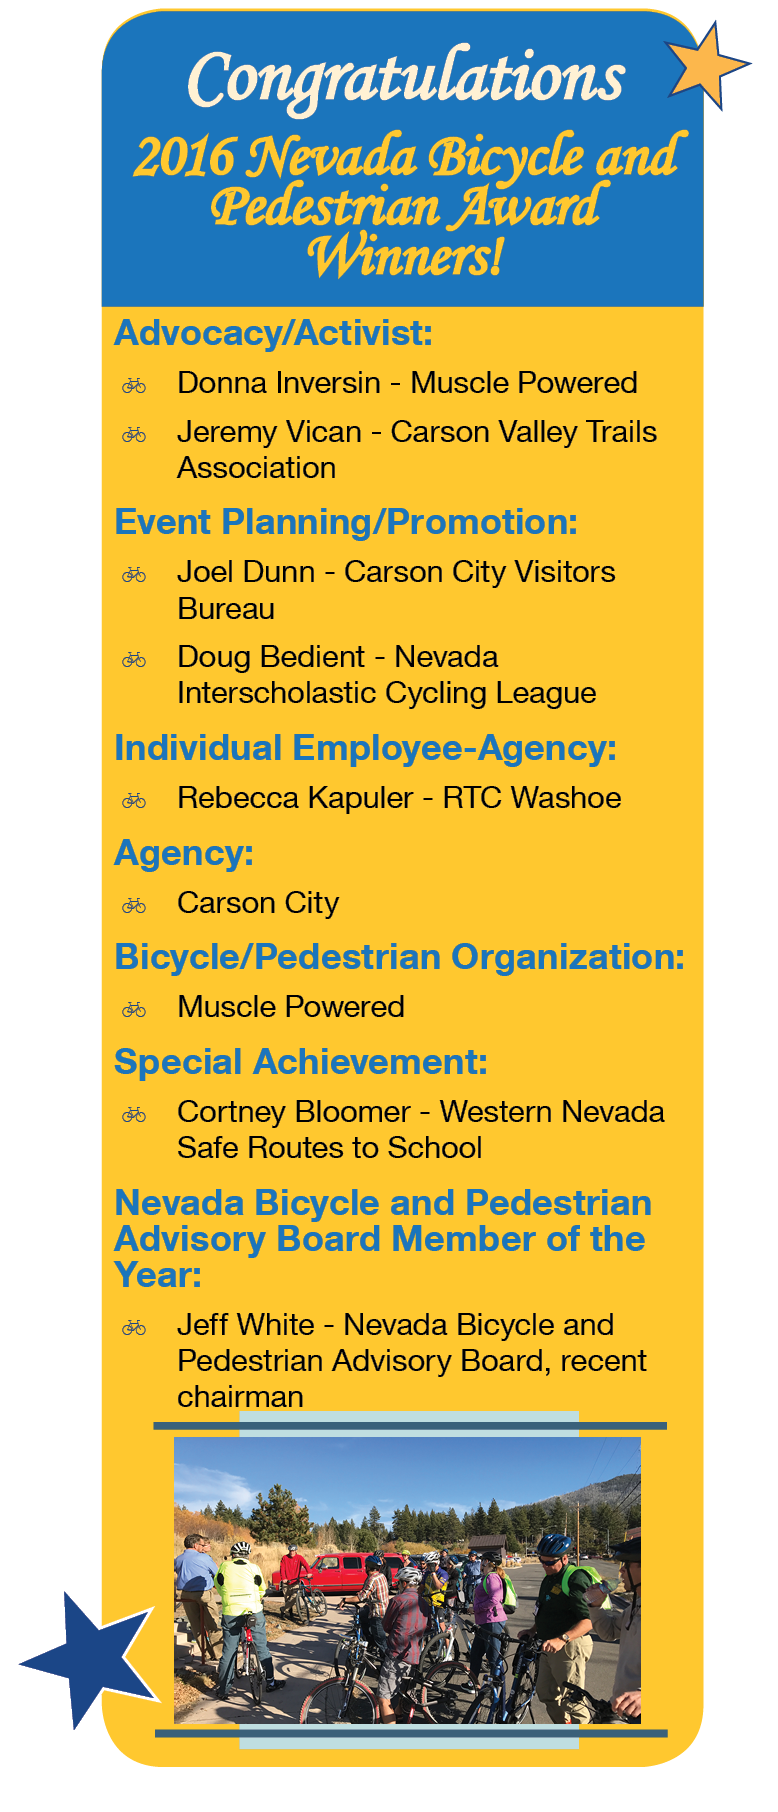 2016 Nevada Bicycle and Pedestrian Award Winners